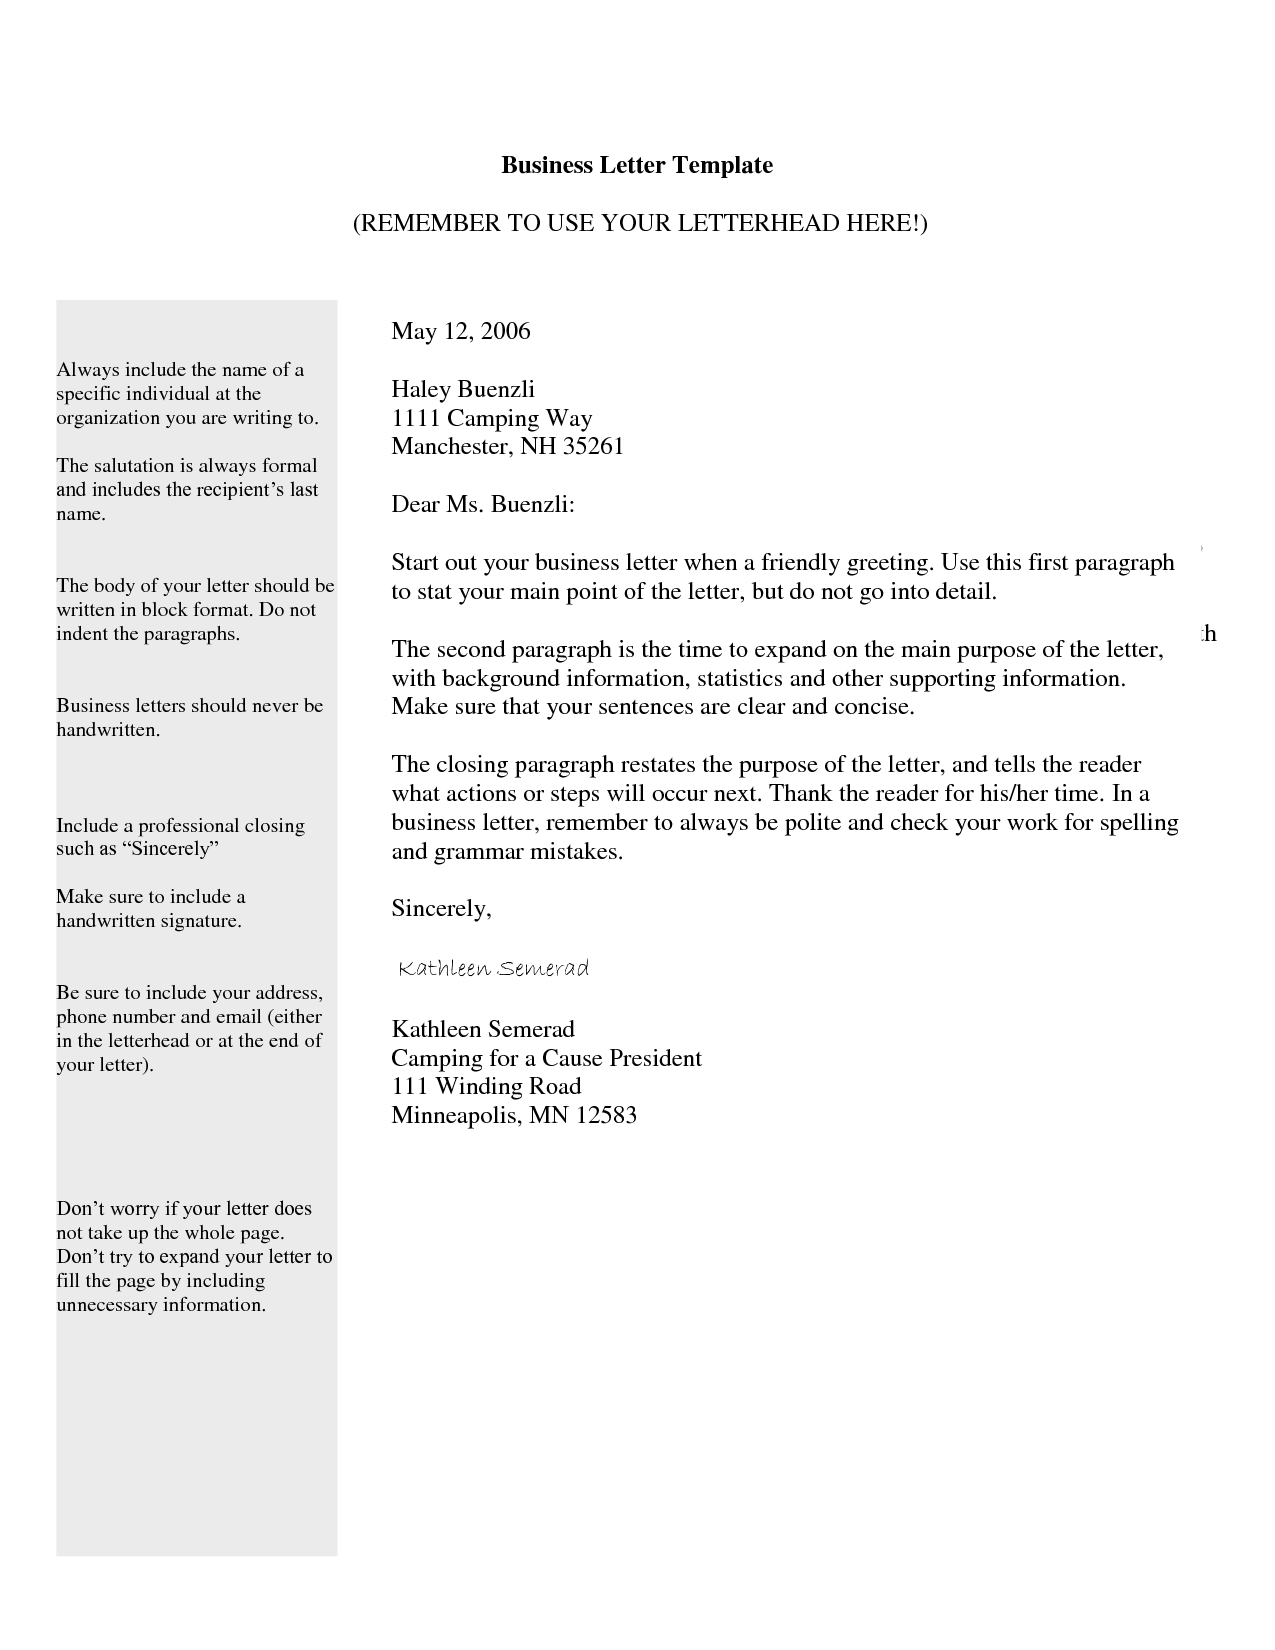 BUSINESS LETTER TEMPLATE | General Category Pix - business letter ...